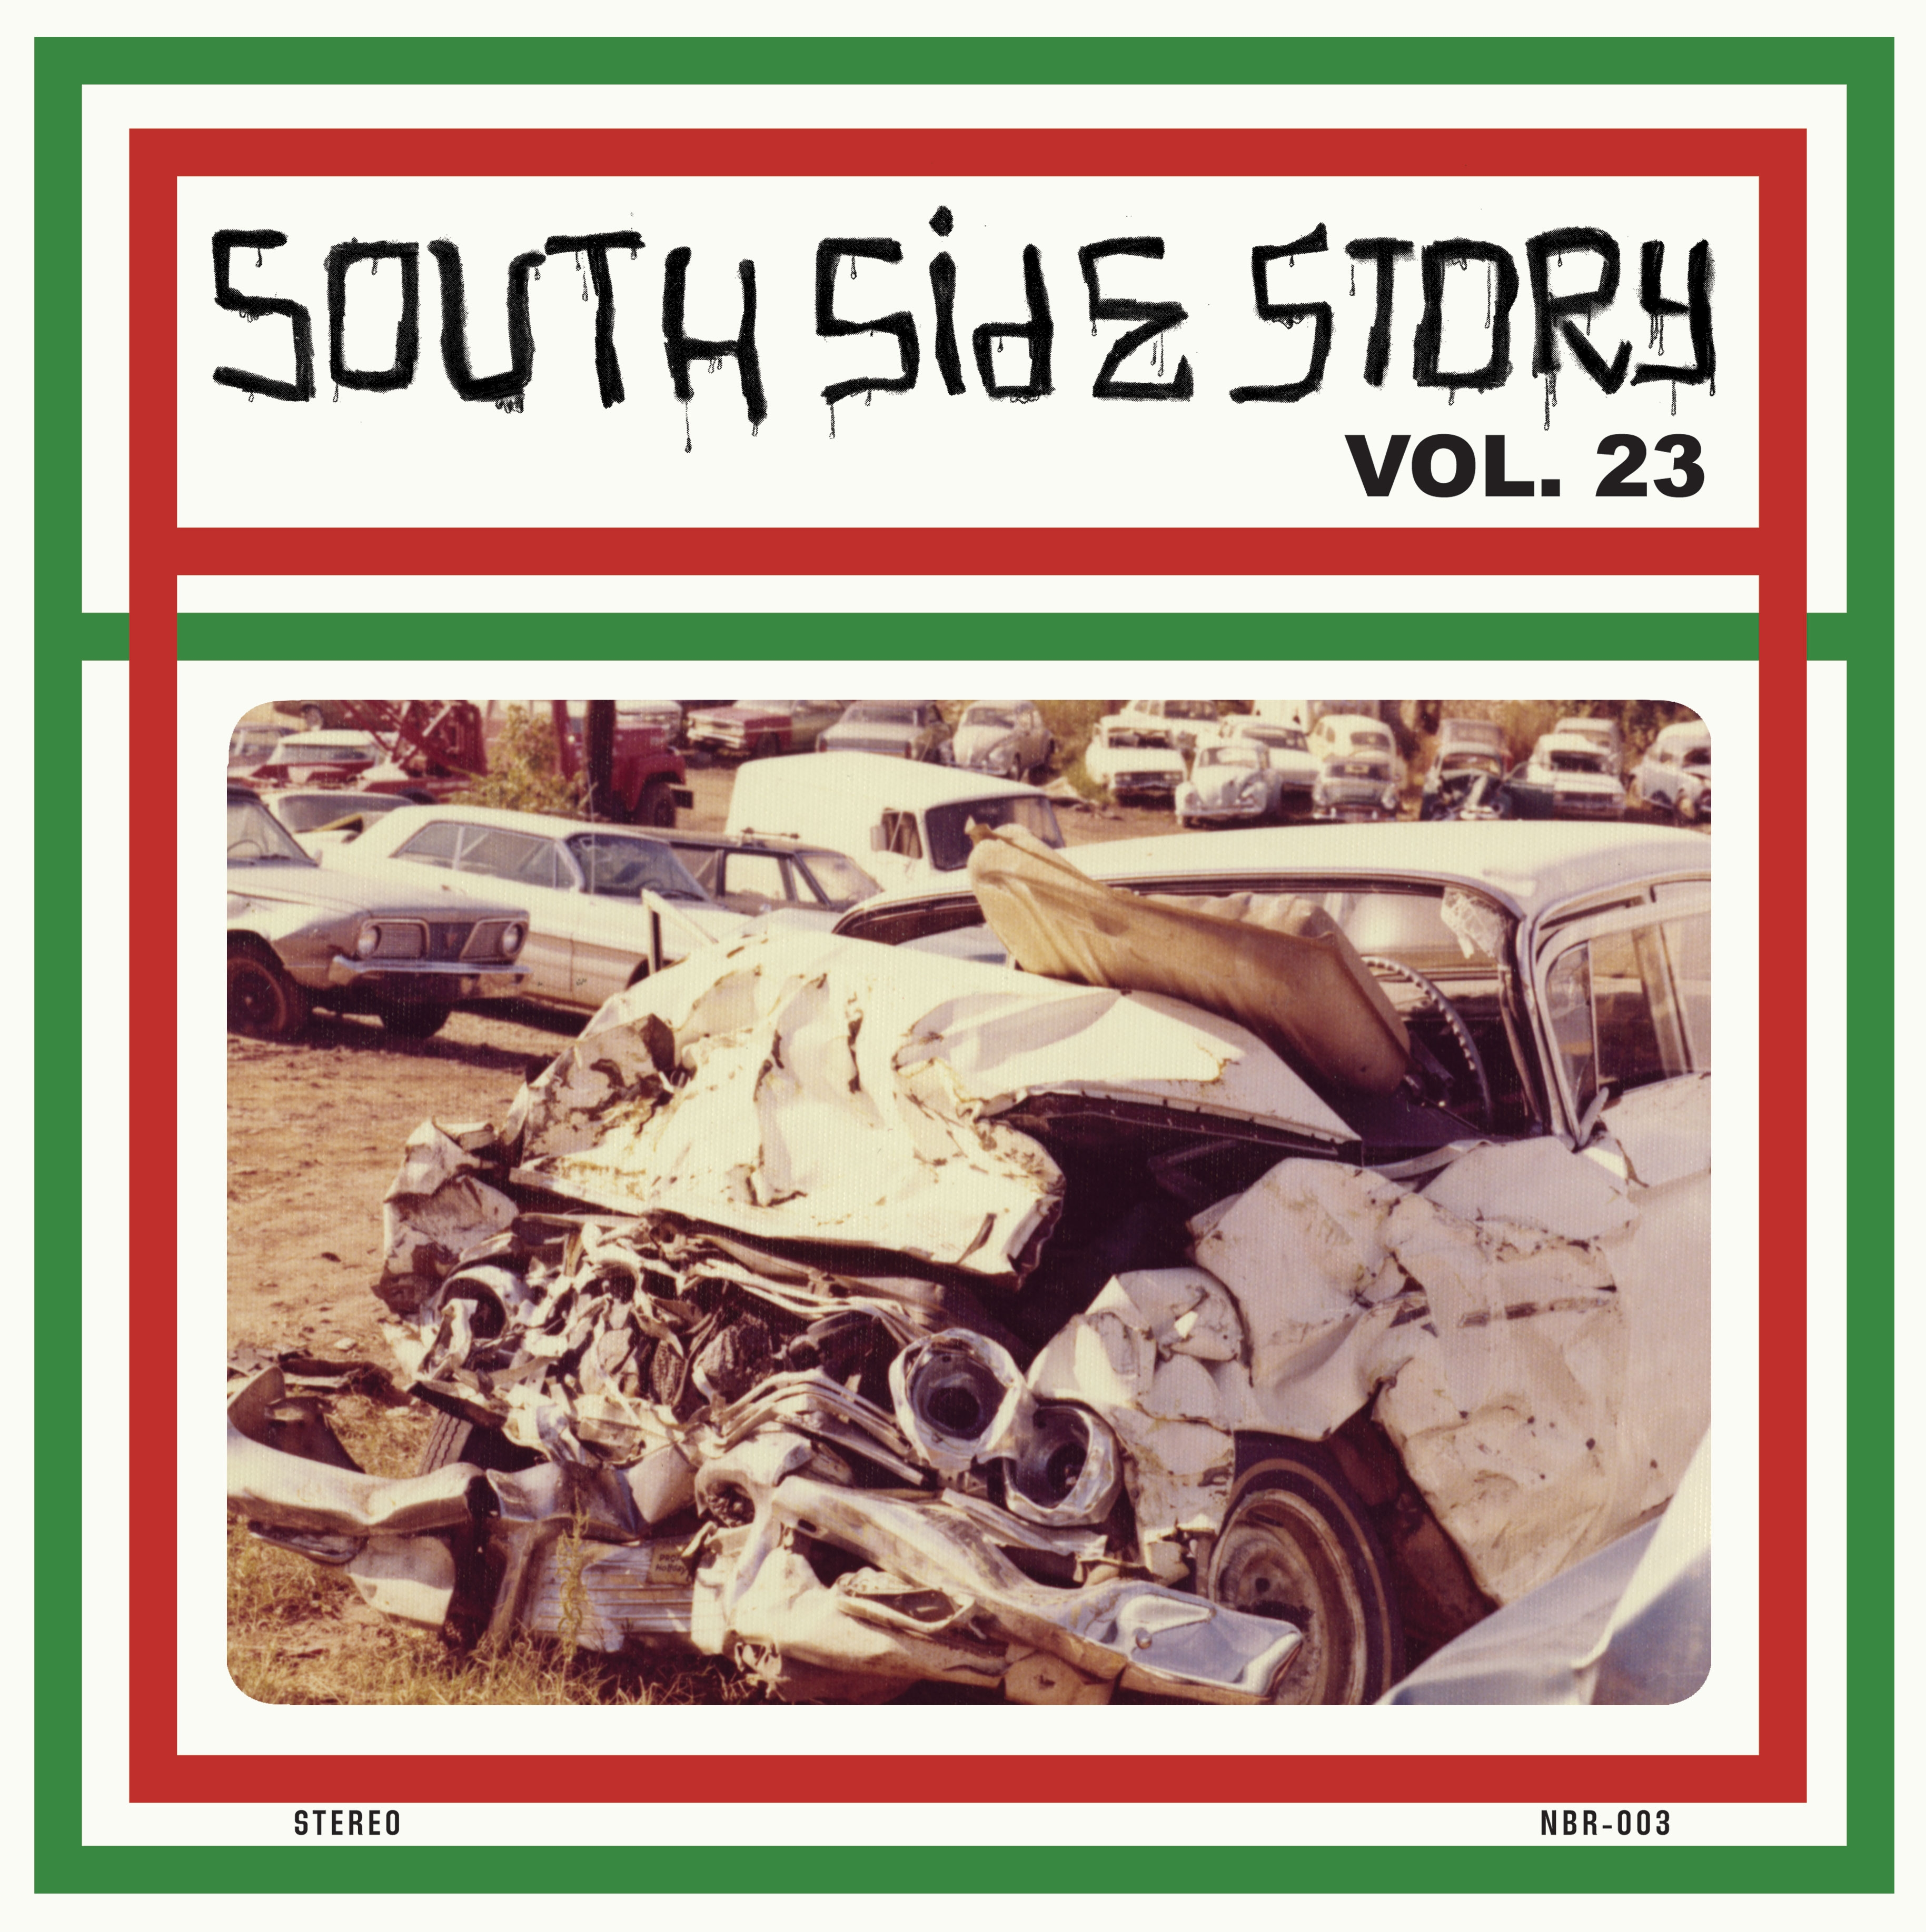 South Side Story - South Side Story